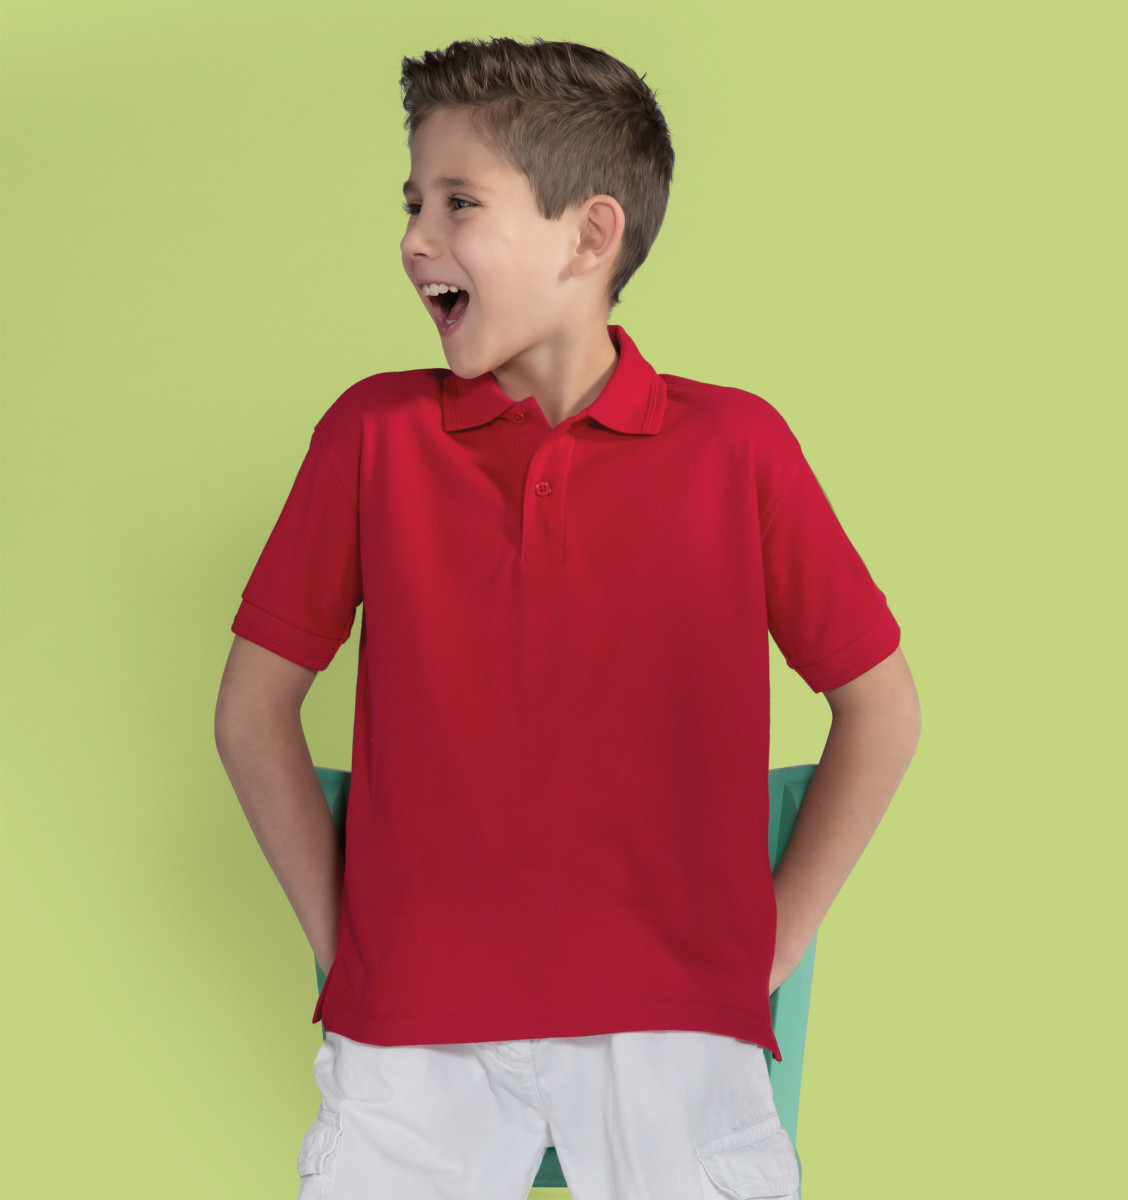 Kids Unisex Top Jerzees Schoolgear Children/'s Classic Polycotton Polo